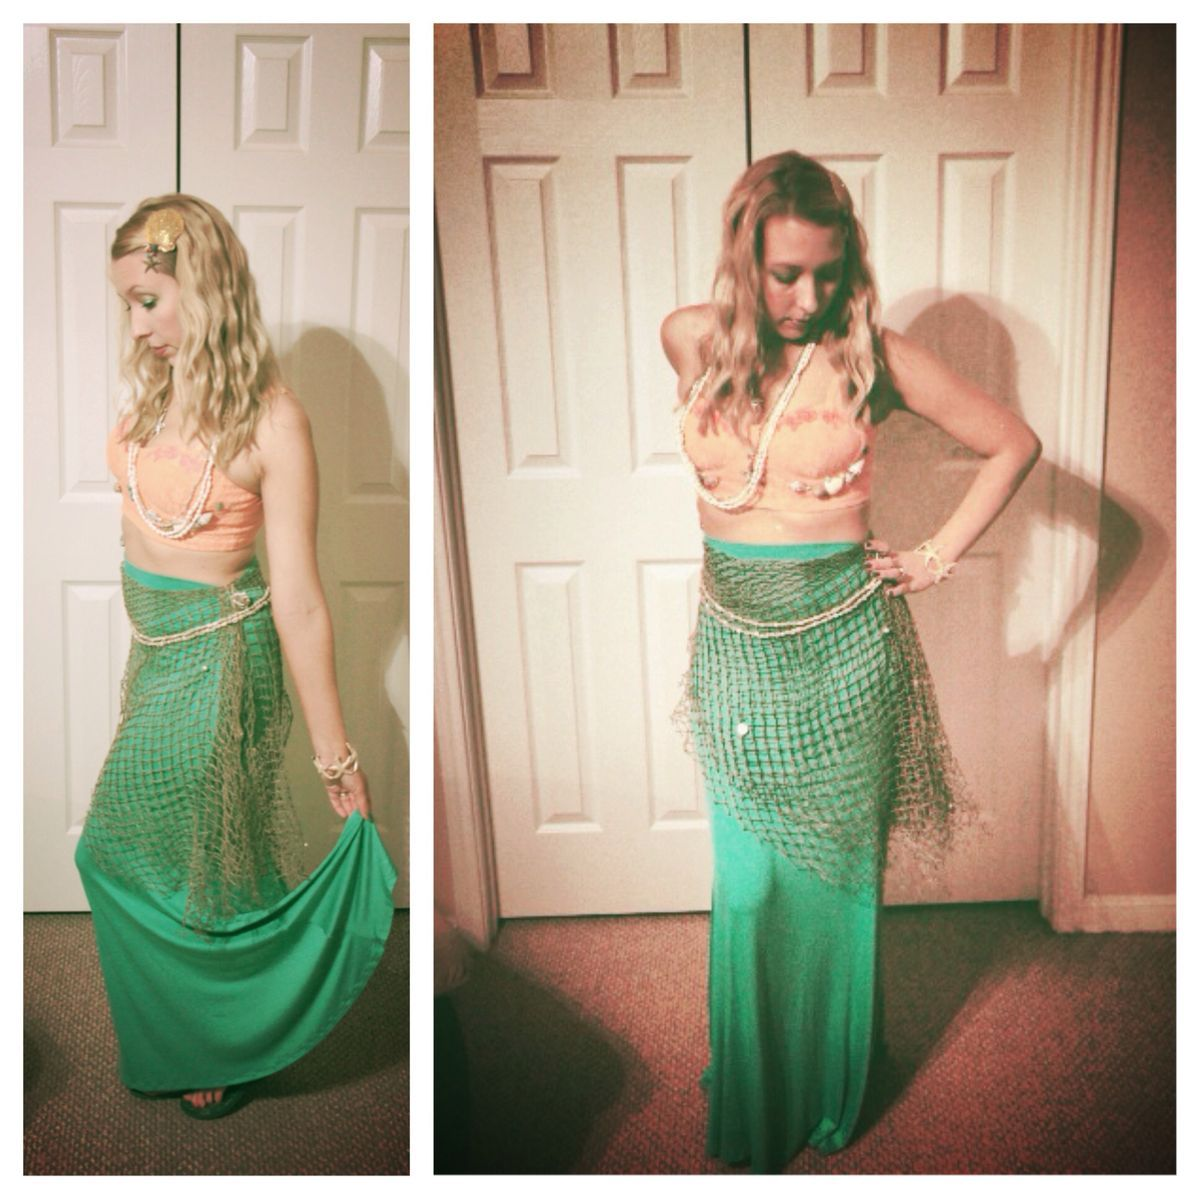 Mermaid costume! Mermaid halloween costumes, Mermaid